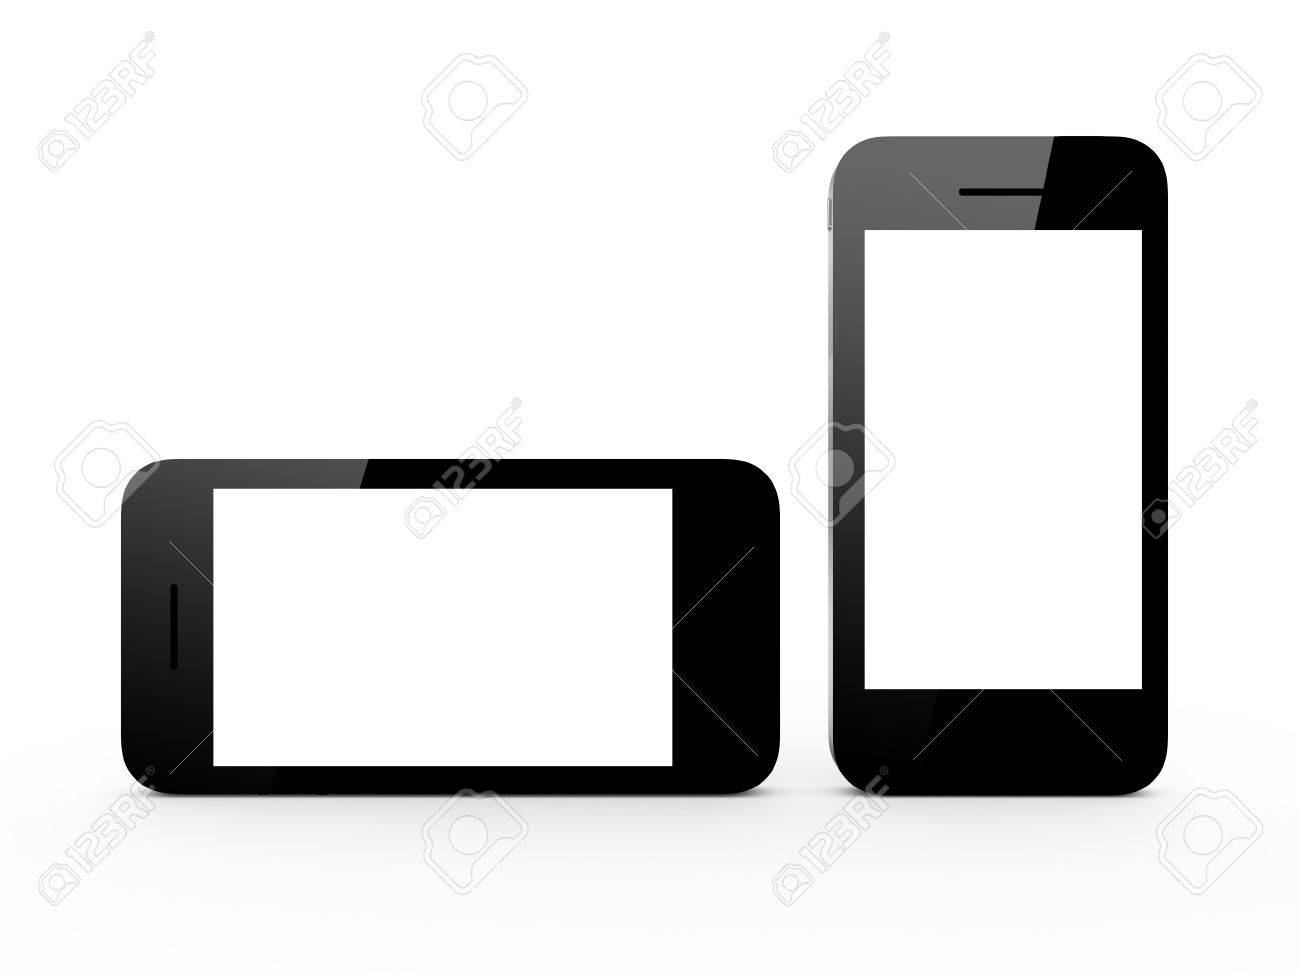 Realistic Mobile Phone Device With Blank Touch Screen With Black ...